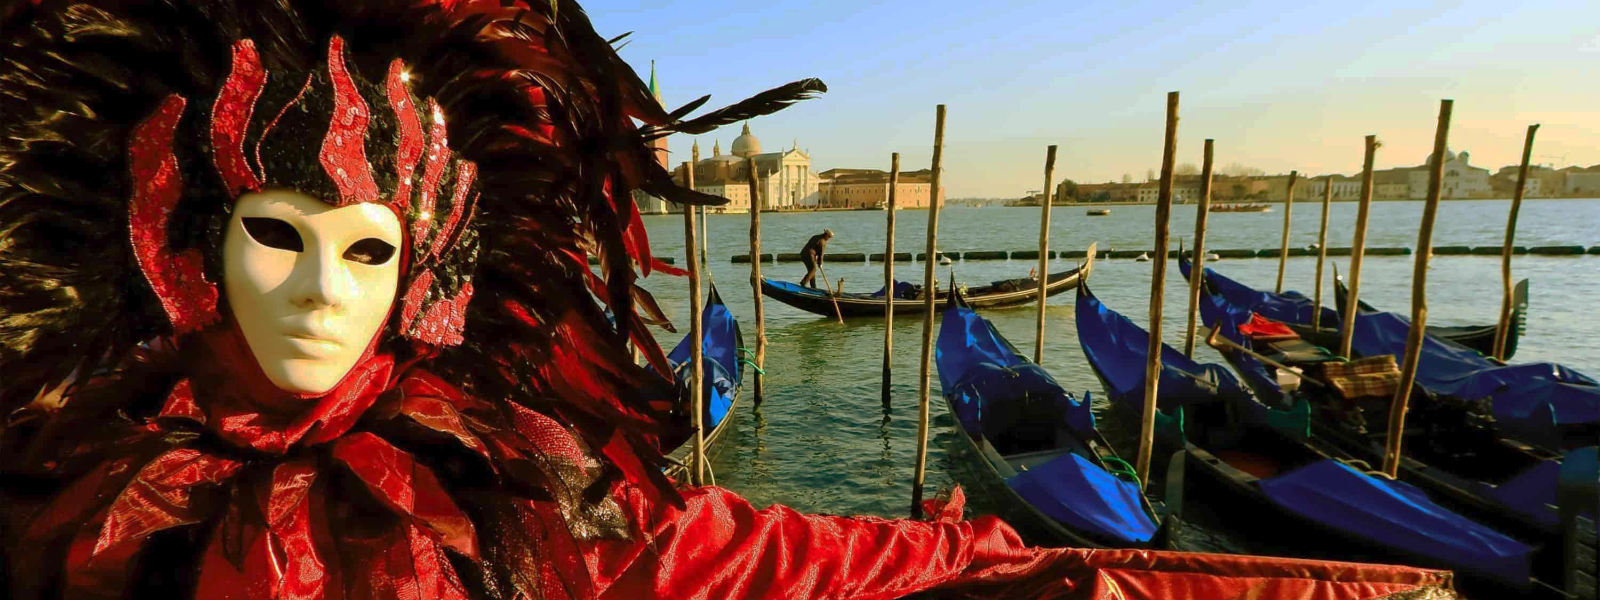 Venetian Carnival, the most famous event in Venice